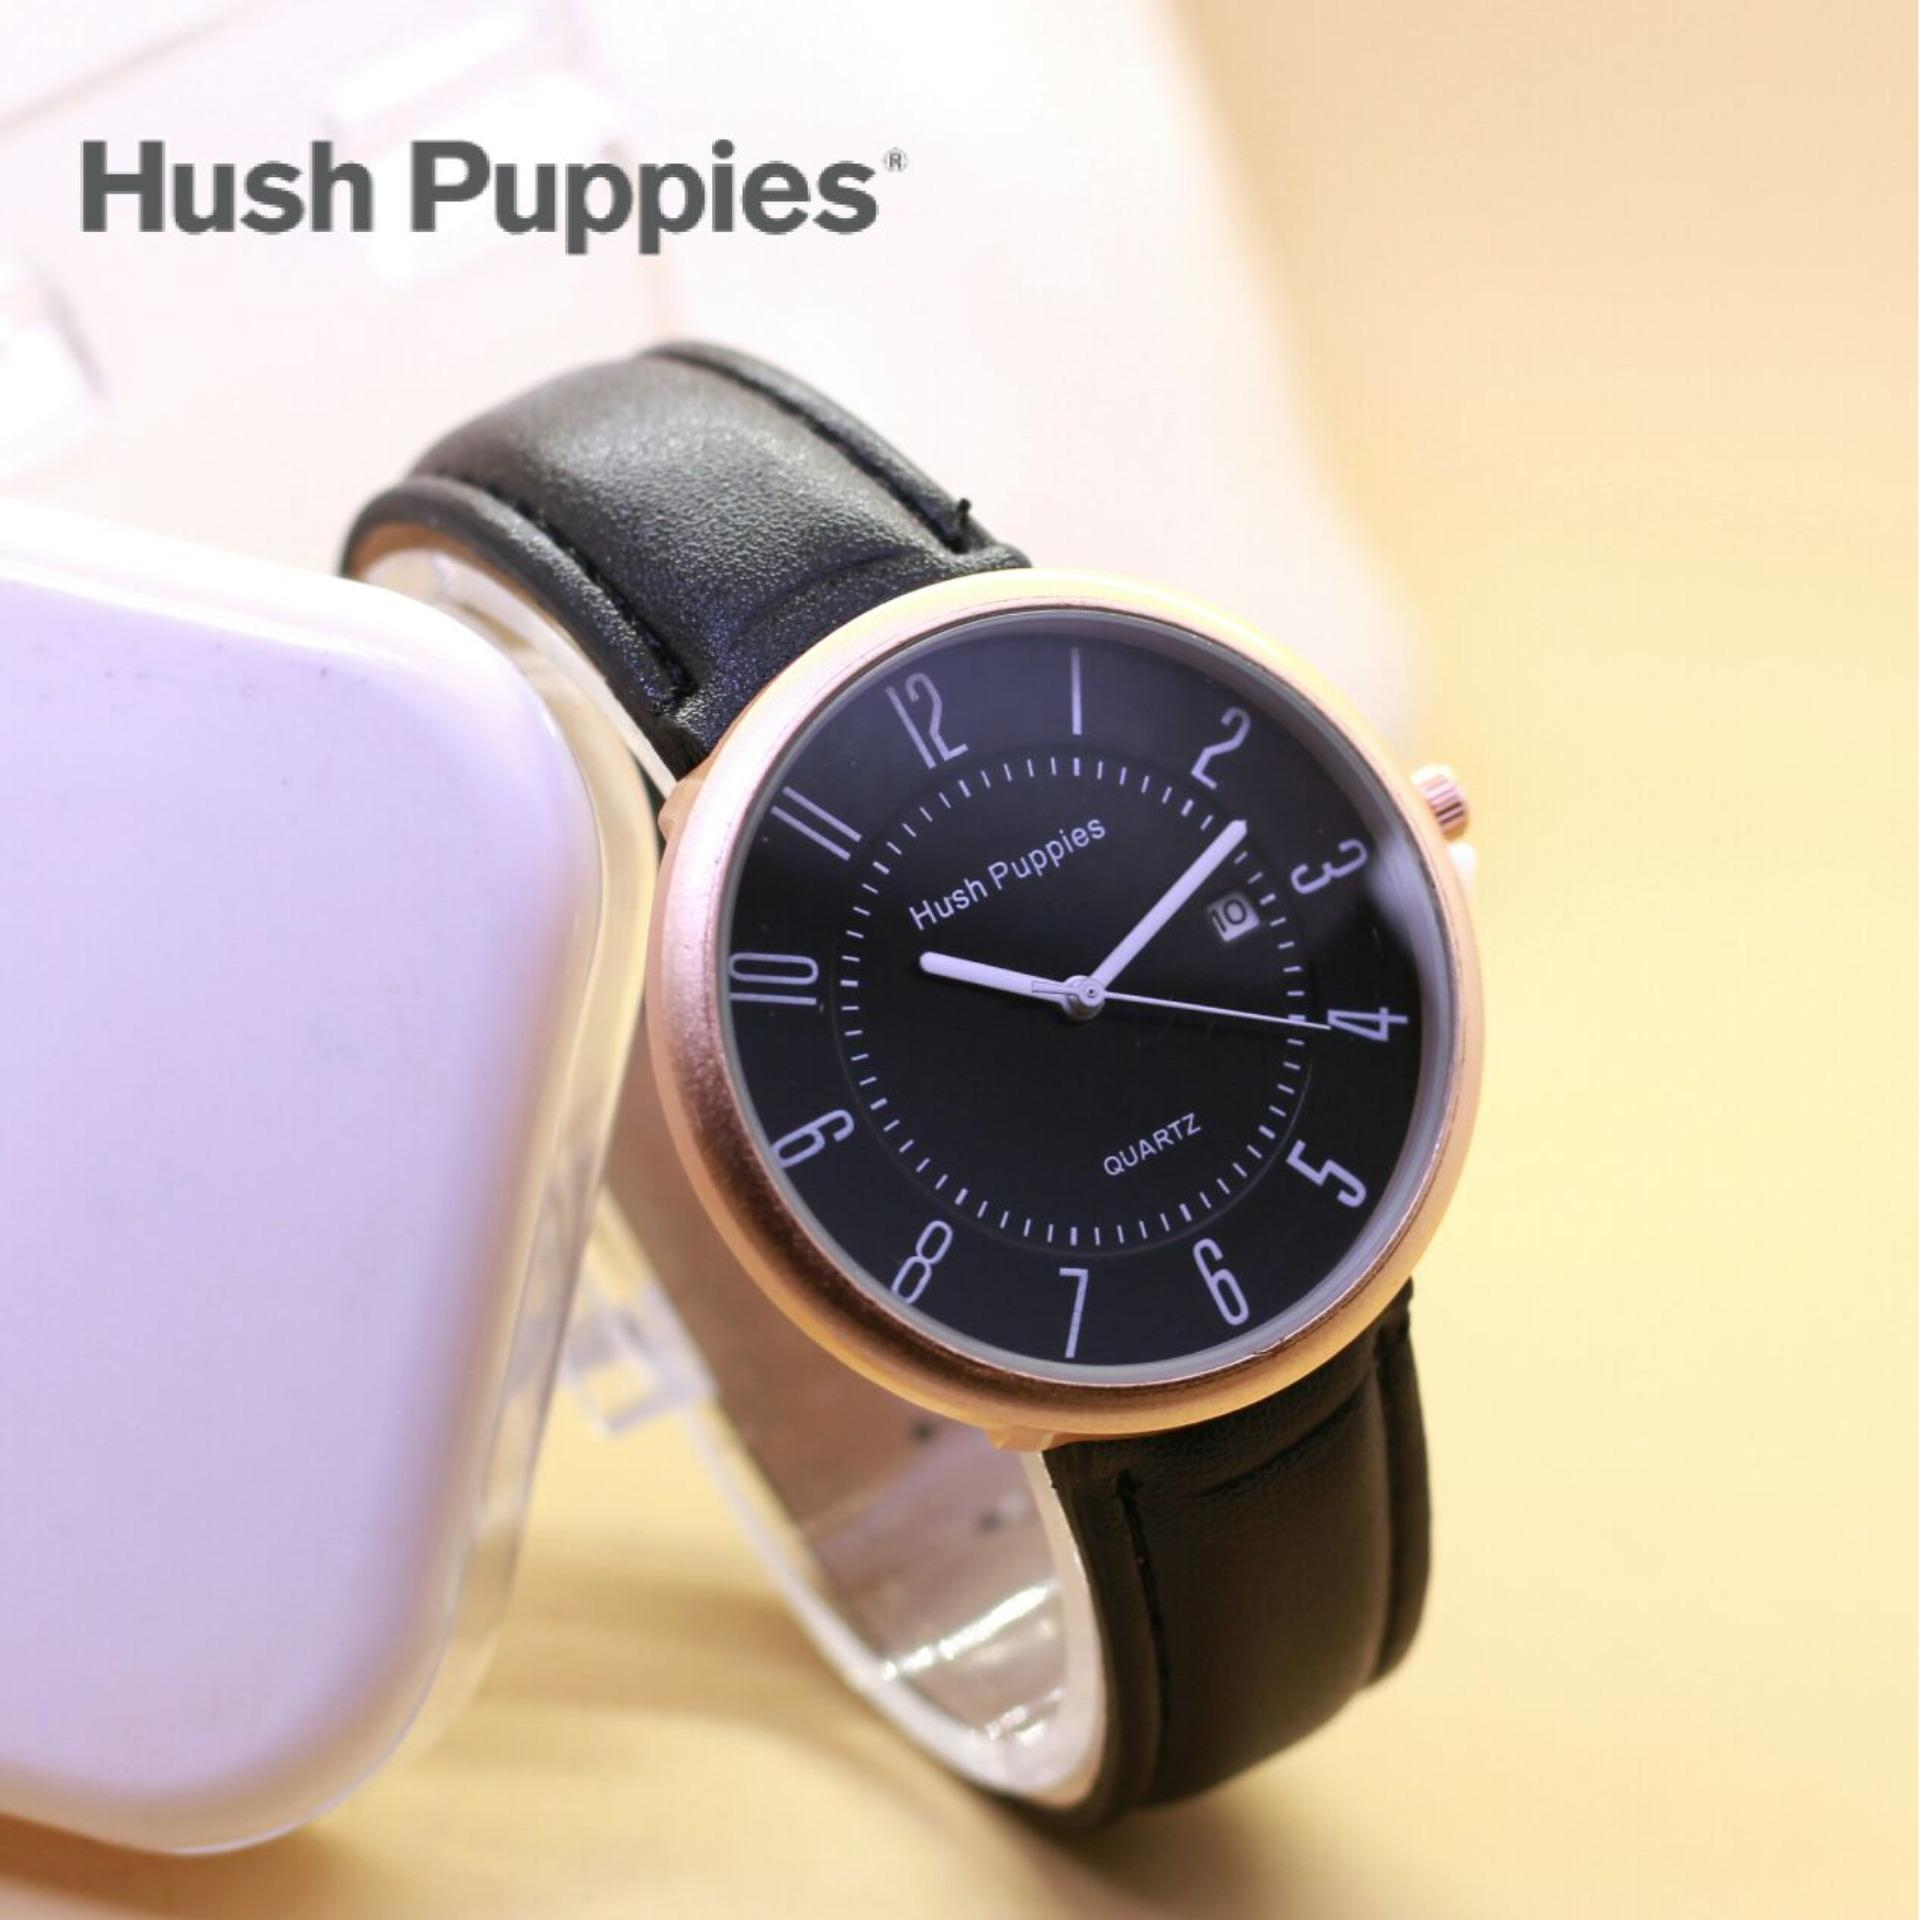 Jam Tangan Hush Puppies 014 Tanggal On Kulit In Black